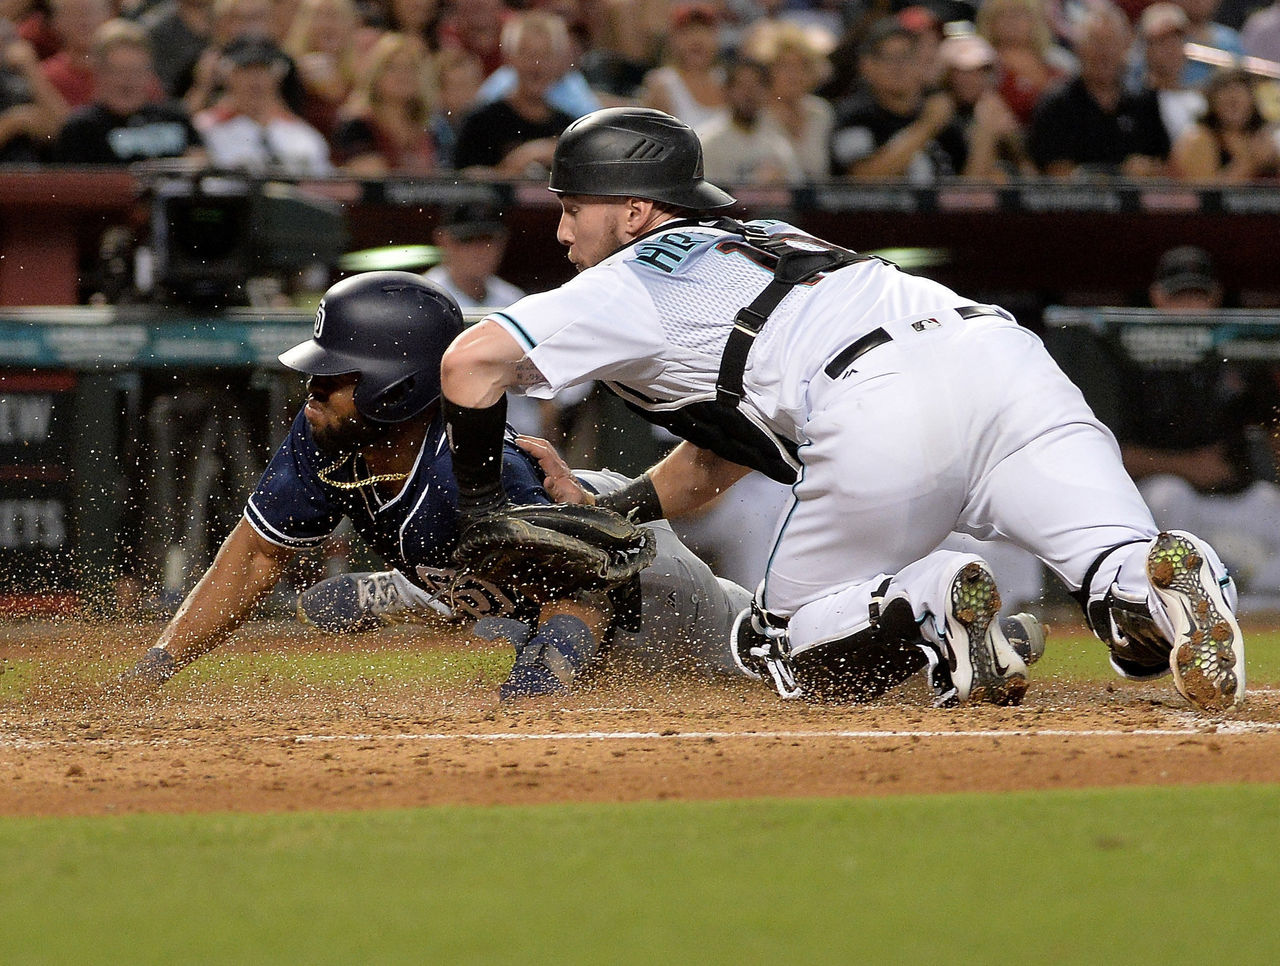 Cropped_2017-09-09t023708z_1366432929_nocid_rtrmadp_3_mlb-san-diego-padres-at-arizona-diamondbacks